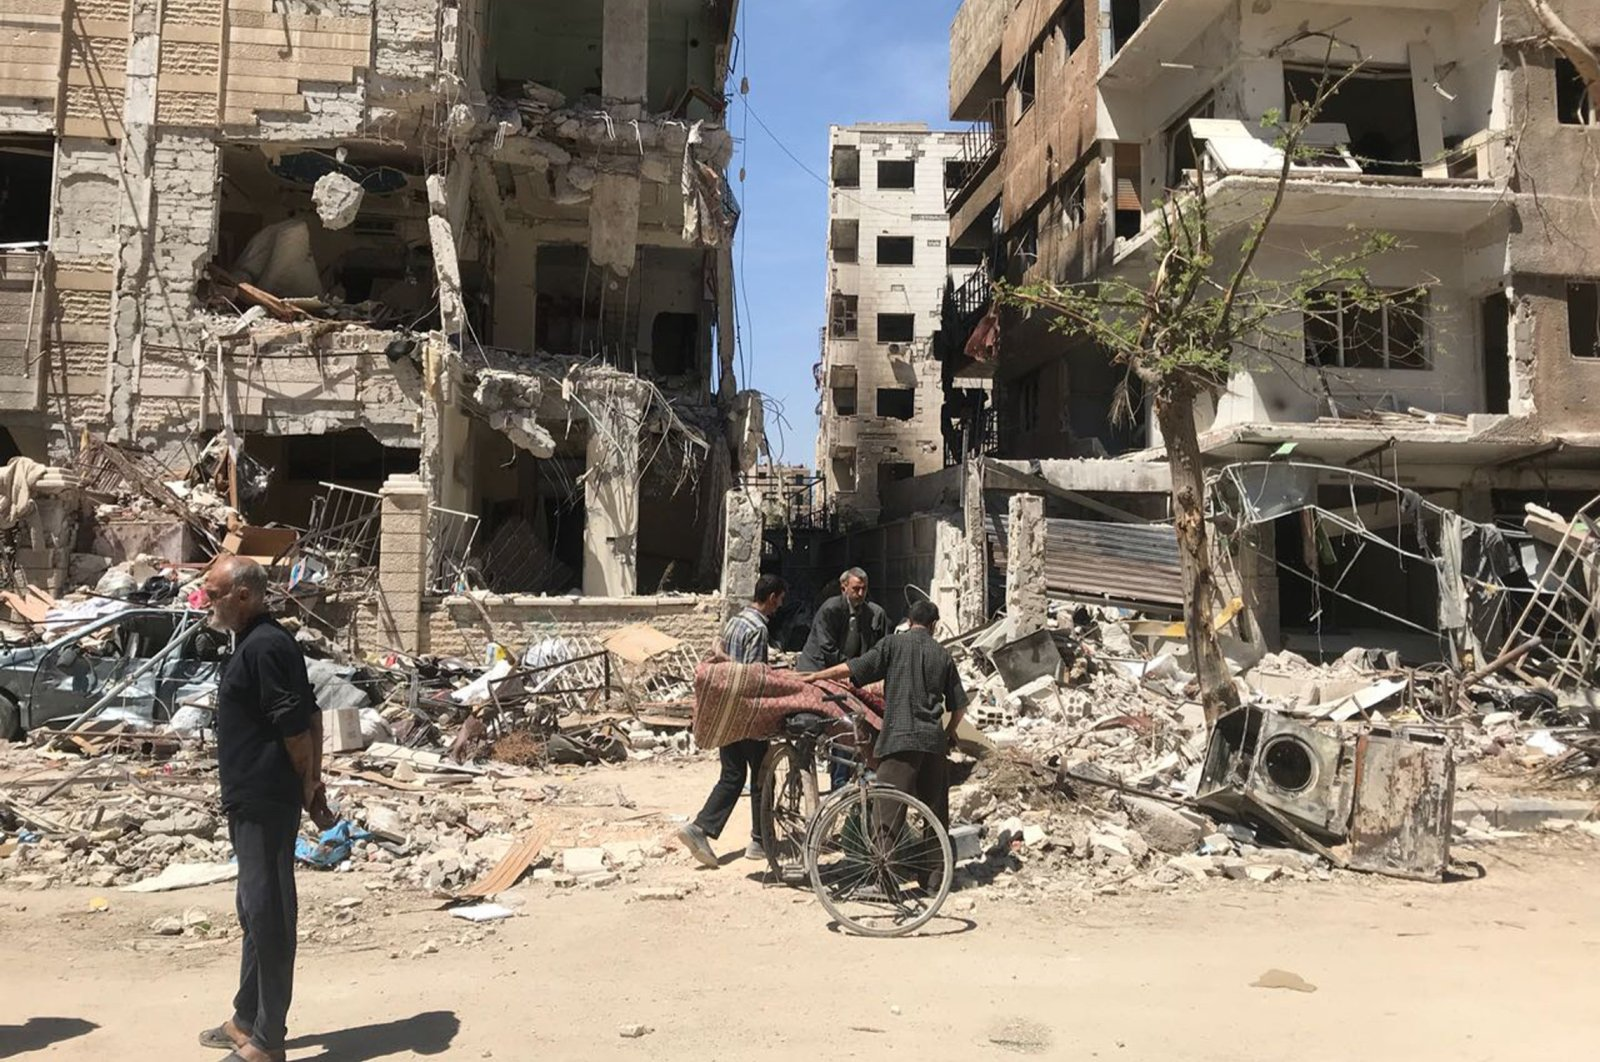 People stand in front of damaged buildings, in the town of Douma, the site of a suspected chemical weapons attack, near Damascus, Syria, April 16, 2018. (AP)